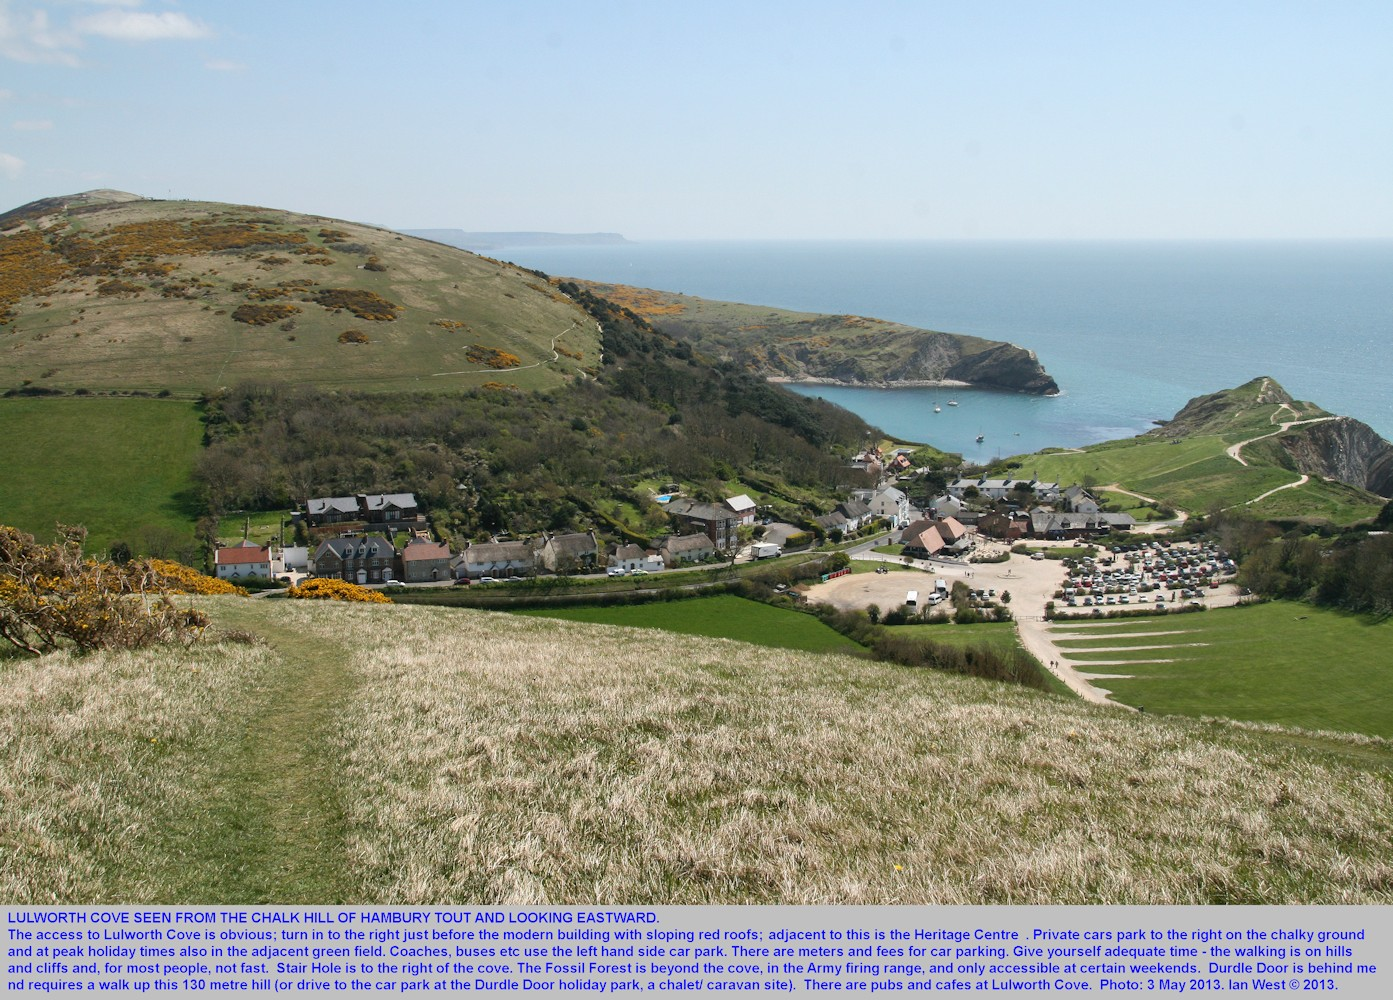 An introductory overview of Lulworth Cove, Dorset, seen from Hambury Tout, a hill on the west side, 3rd May 2013